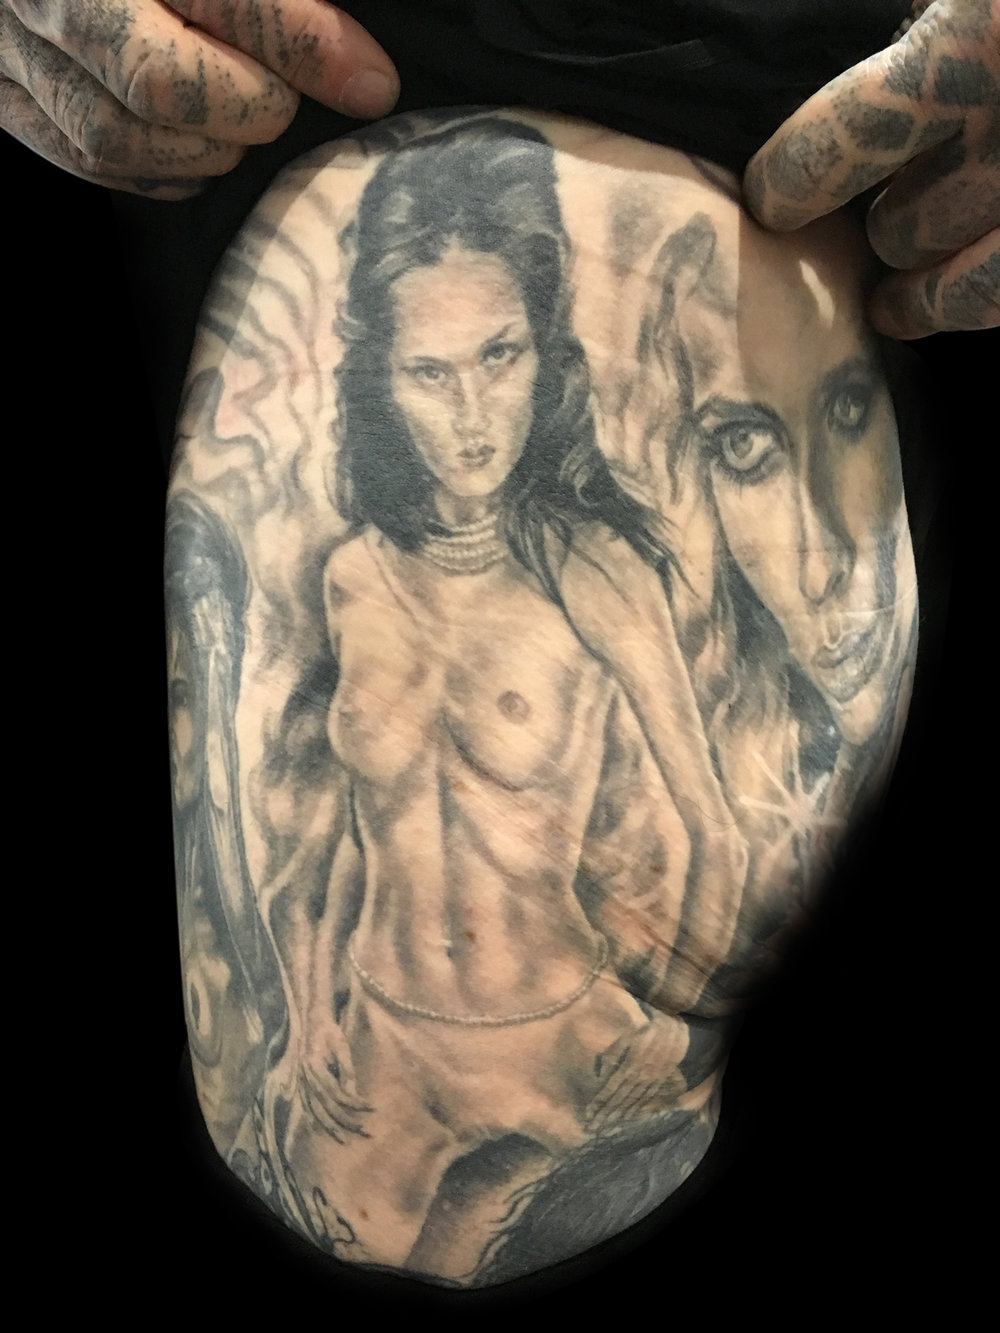 Black and Grey Female Nude Tattoo on Thigh,  healed and 12 years old in this photo